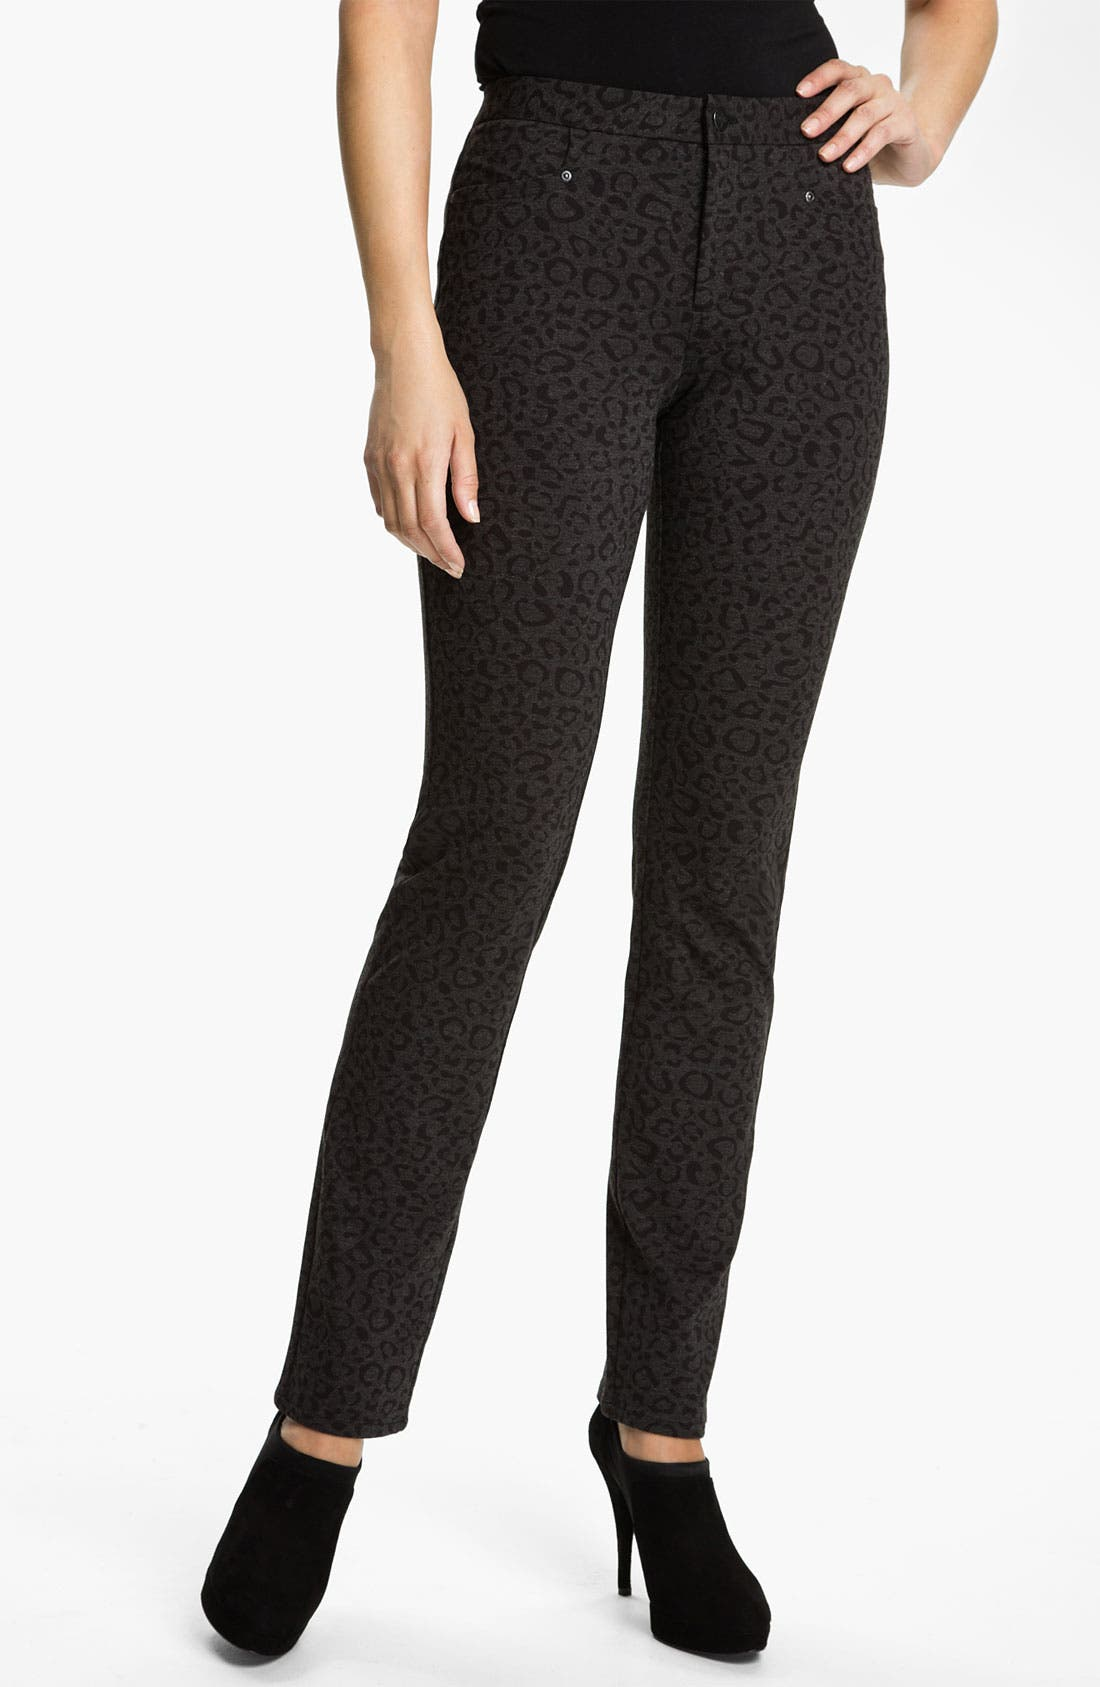 Main Image - NYDJ 'Nancy' Skinny Animal Print Knit Pants